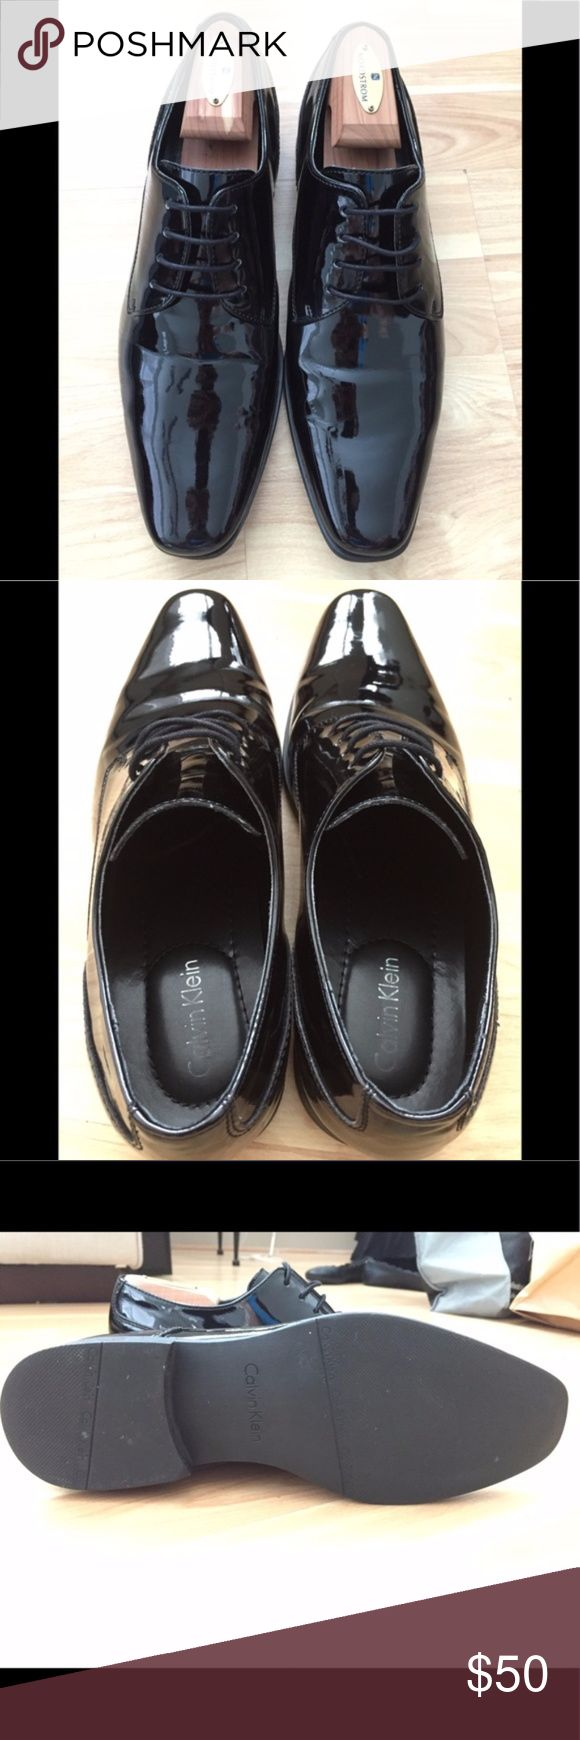 👞 Calvin Klein Patent Formal Lace-ups 🤵 Calvin Klein patent formal lace-ups. Worn once (see soles). Great cost-effective option for your next black tie event! :)  *trees not included* Calvin Klein Shoes Oxfords & Derbys